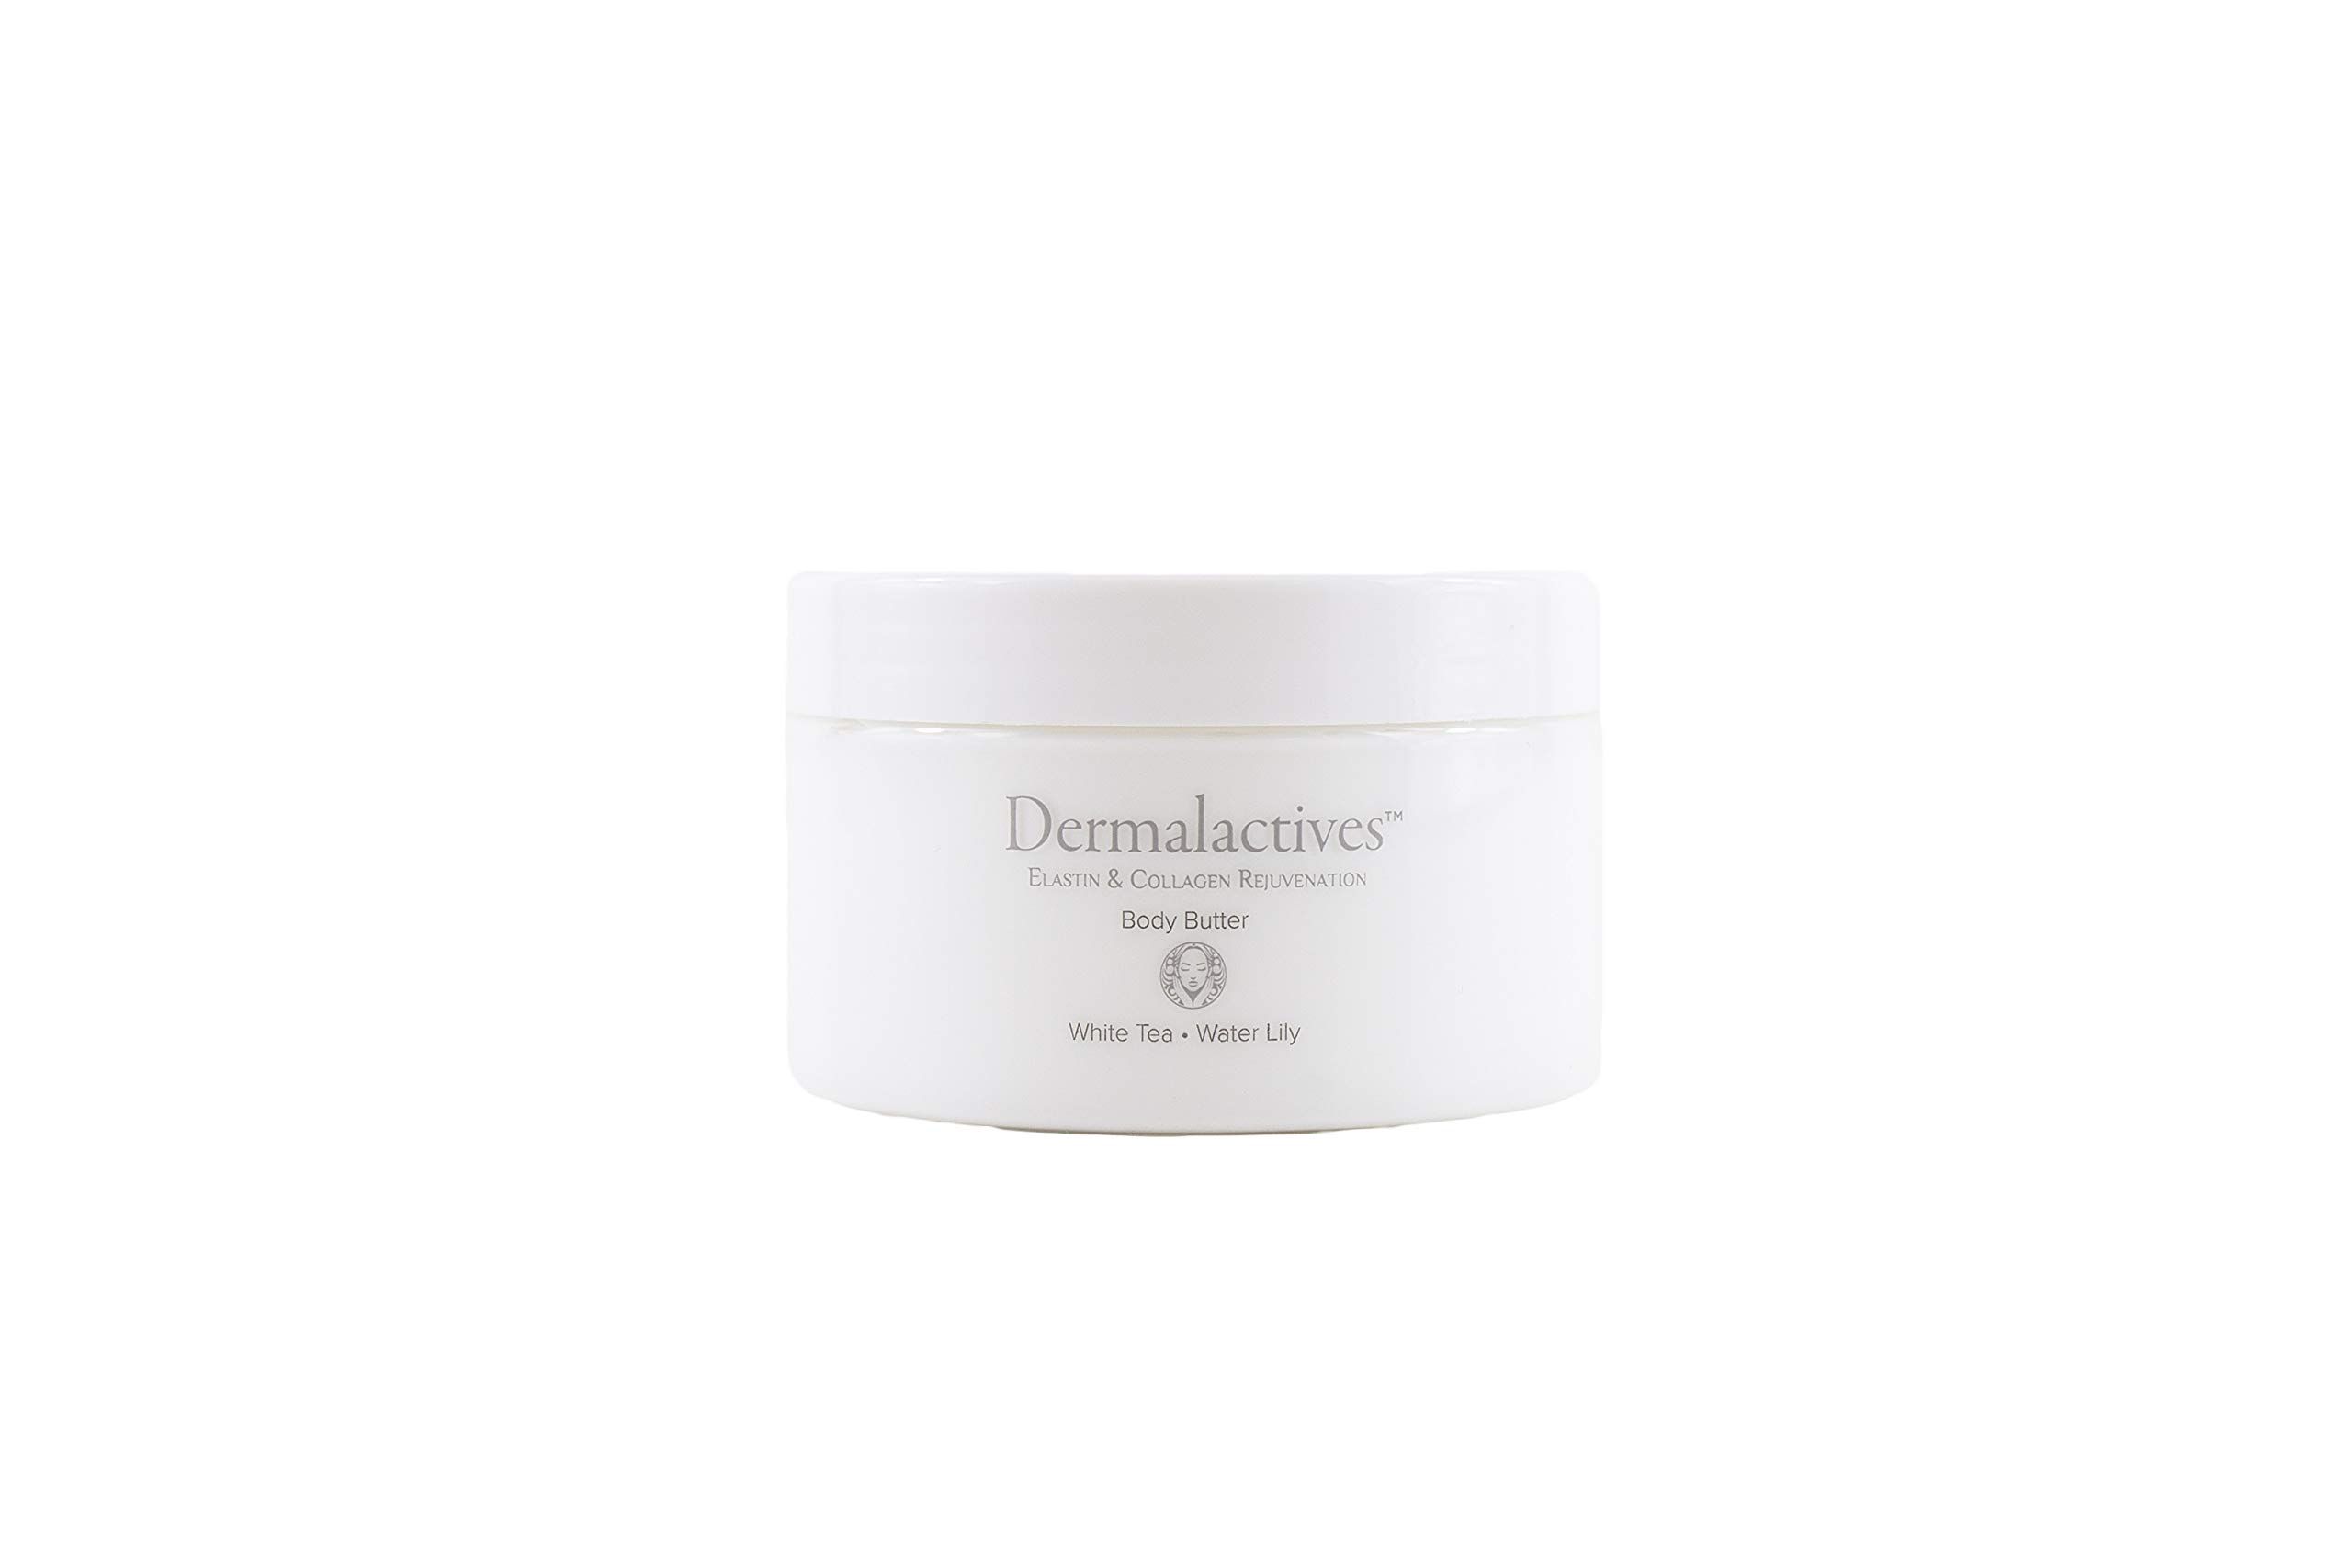 Dermalactives Replenishing & Nourishing Body Butter - All Natural Way To Provide Your Skin With a Protective Layer That Will Keep Your Skin Smooth, Soft and Healthy (White Tea)